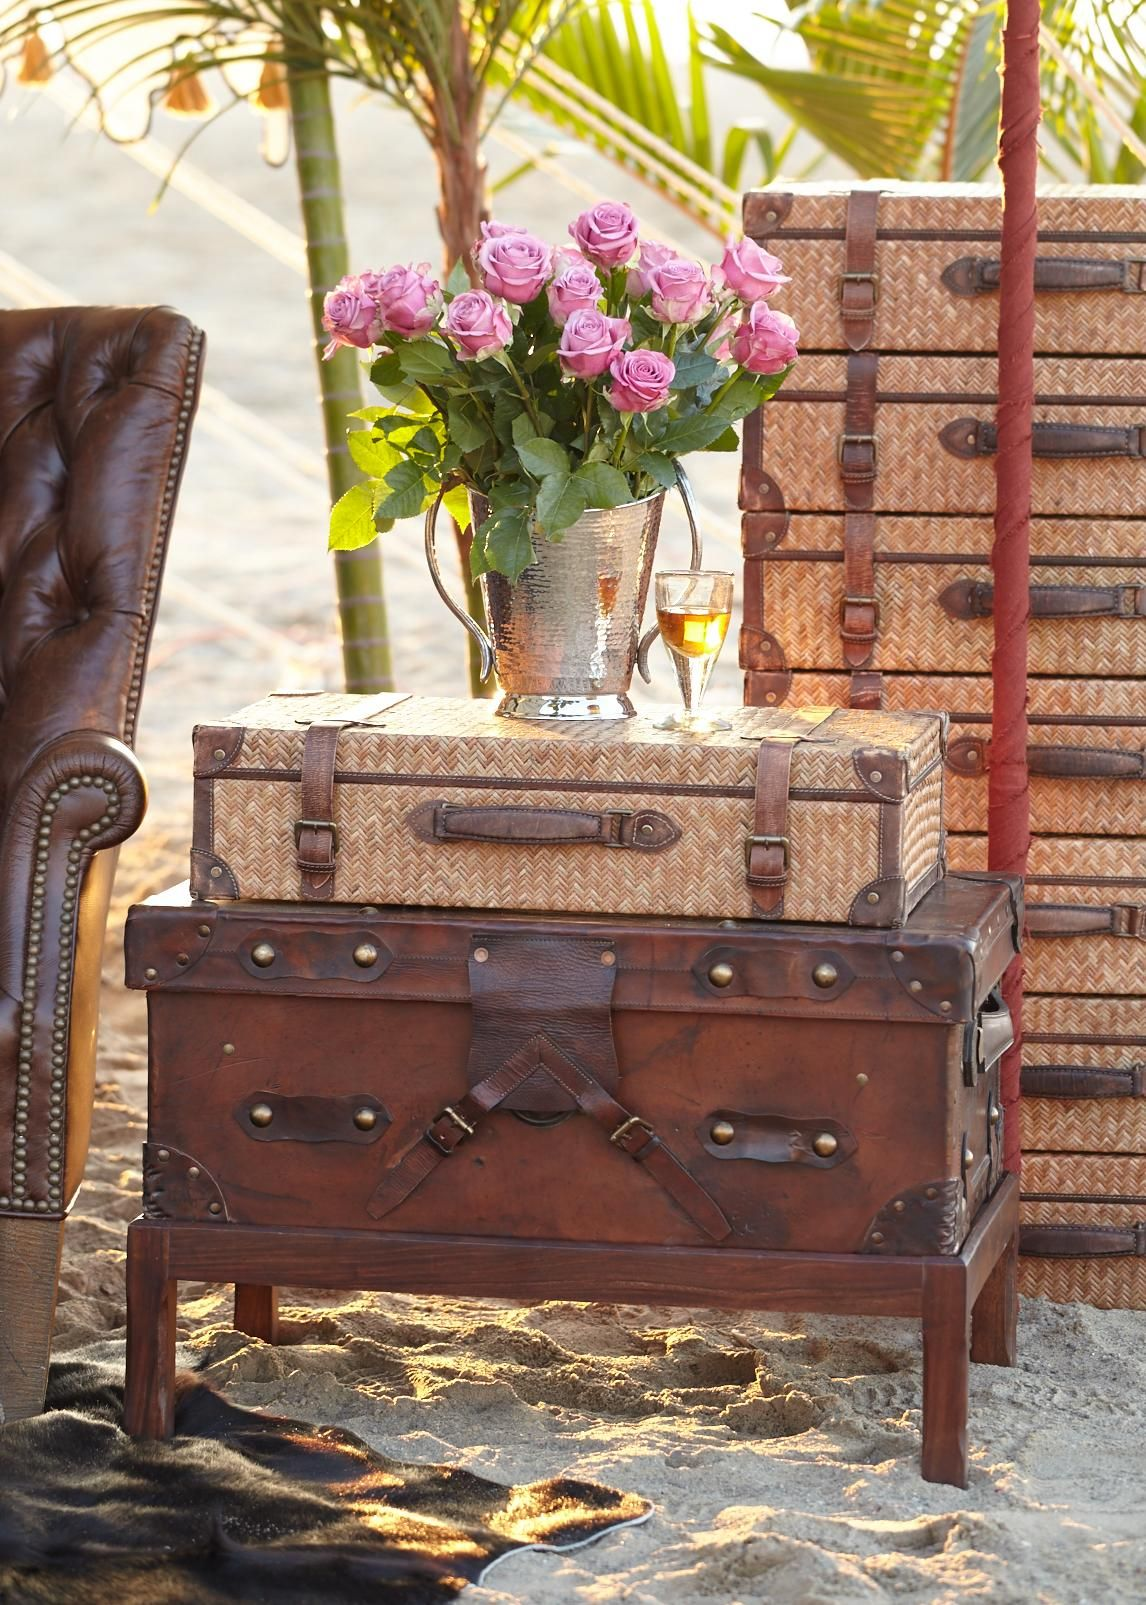 Couchtisch Colonial Vintage Inspired Trunks Truly Capture The Caravan Look Shop Our